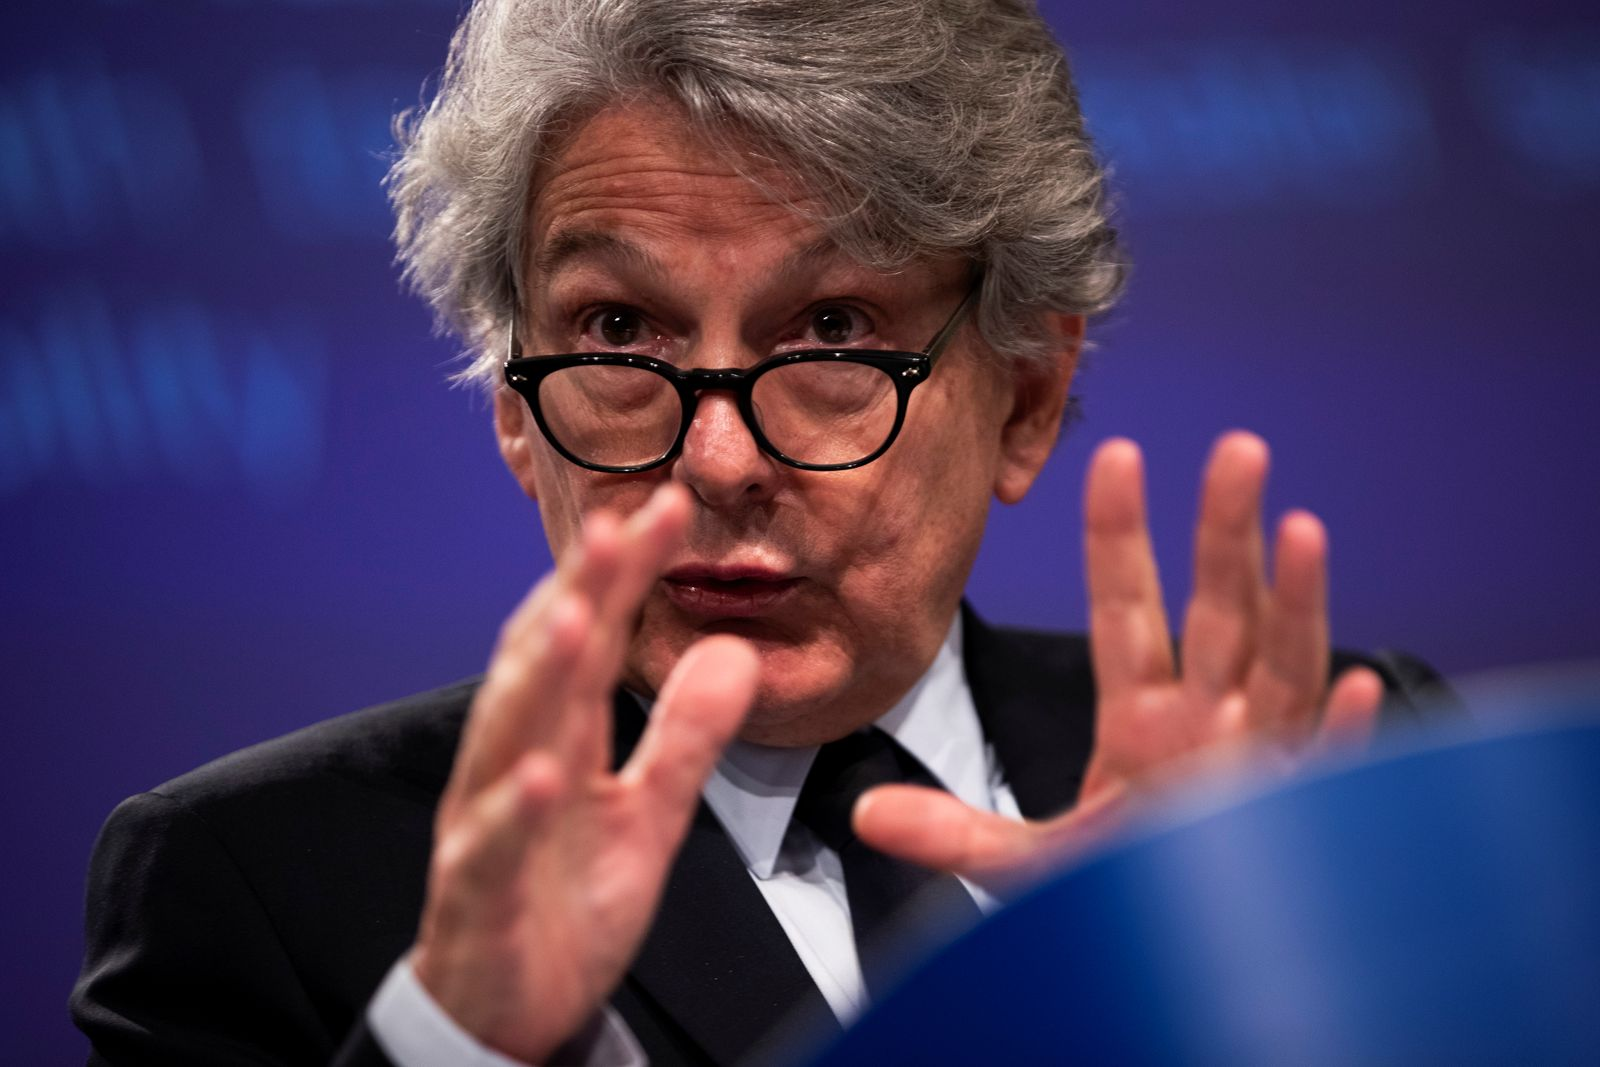 European Union Internal Market Commissioner Thierry Breton talks to journalists during an online news conference at the EU headquarters in Brussels